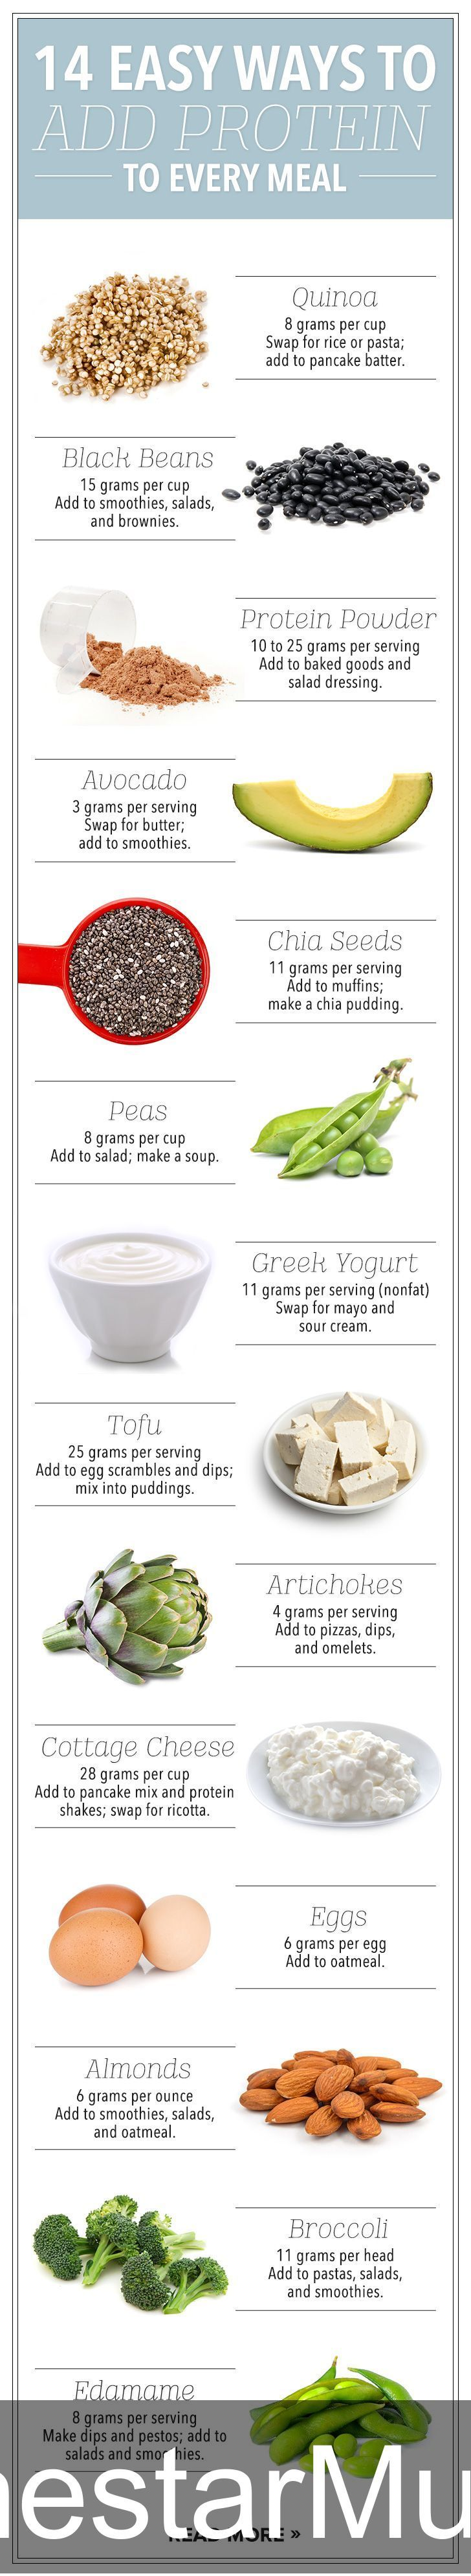 14 Easy Ways to Add Extra (Vegetarian-Friendly) Protein to Every Meal #nutrition   #fitness  #weightloss  #workout